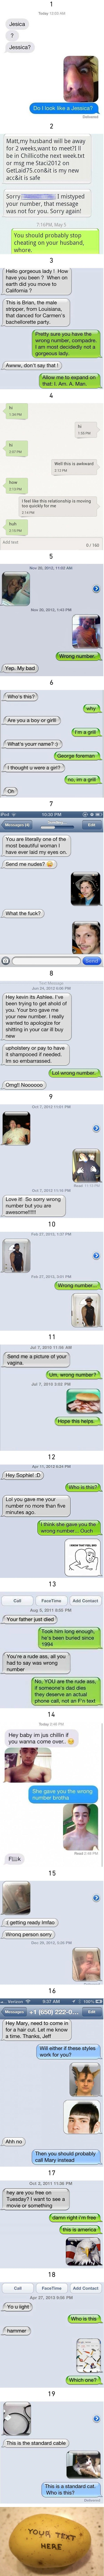 19 Funniest Wrong Number Texts - 9GAG